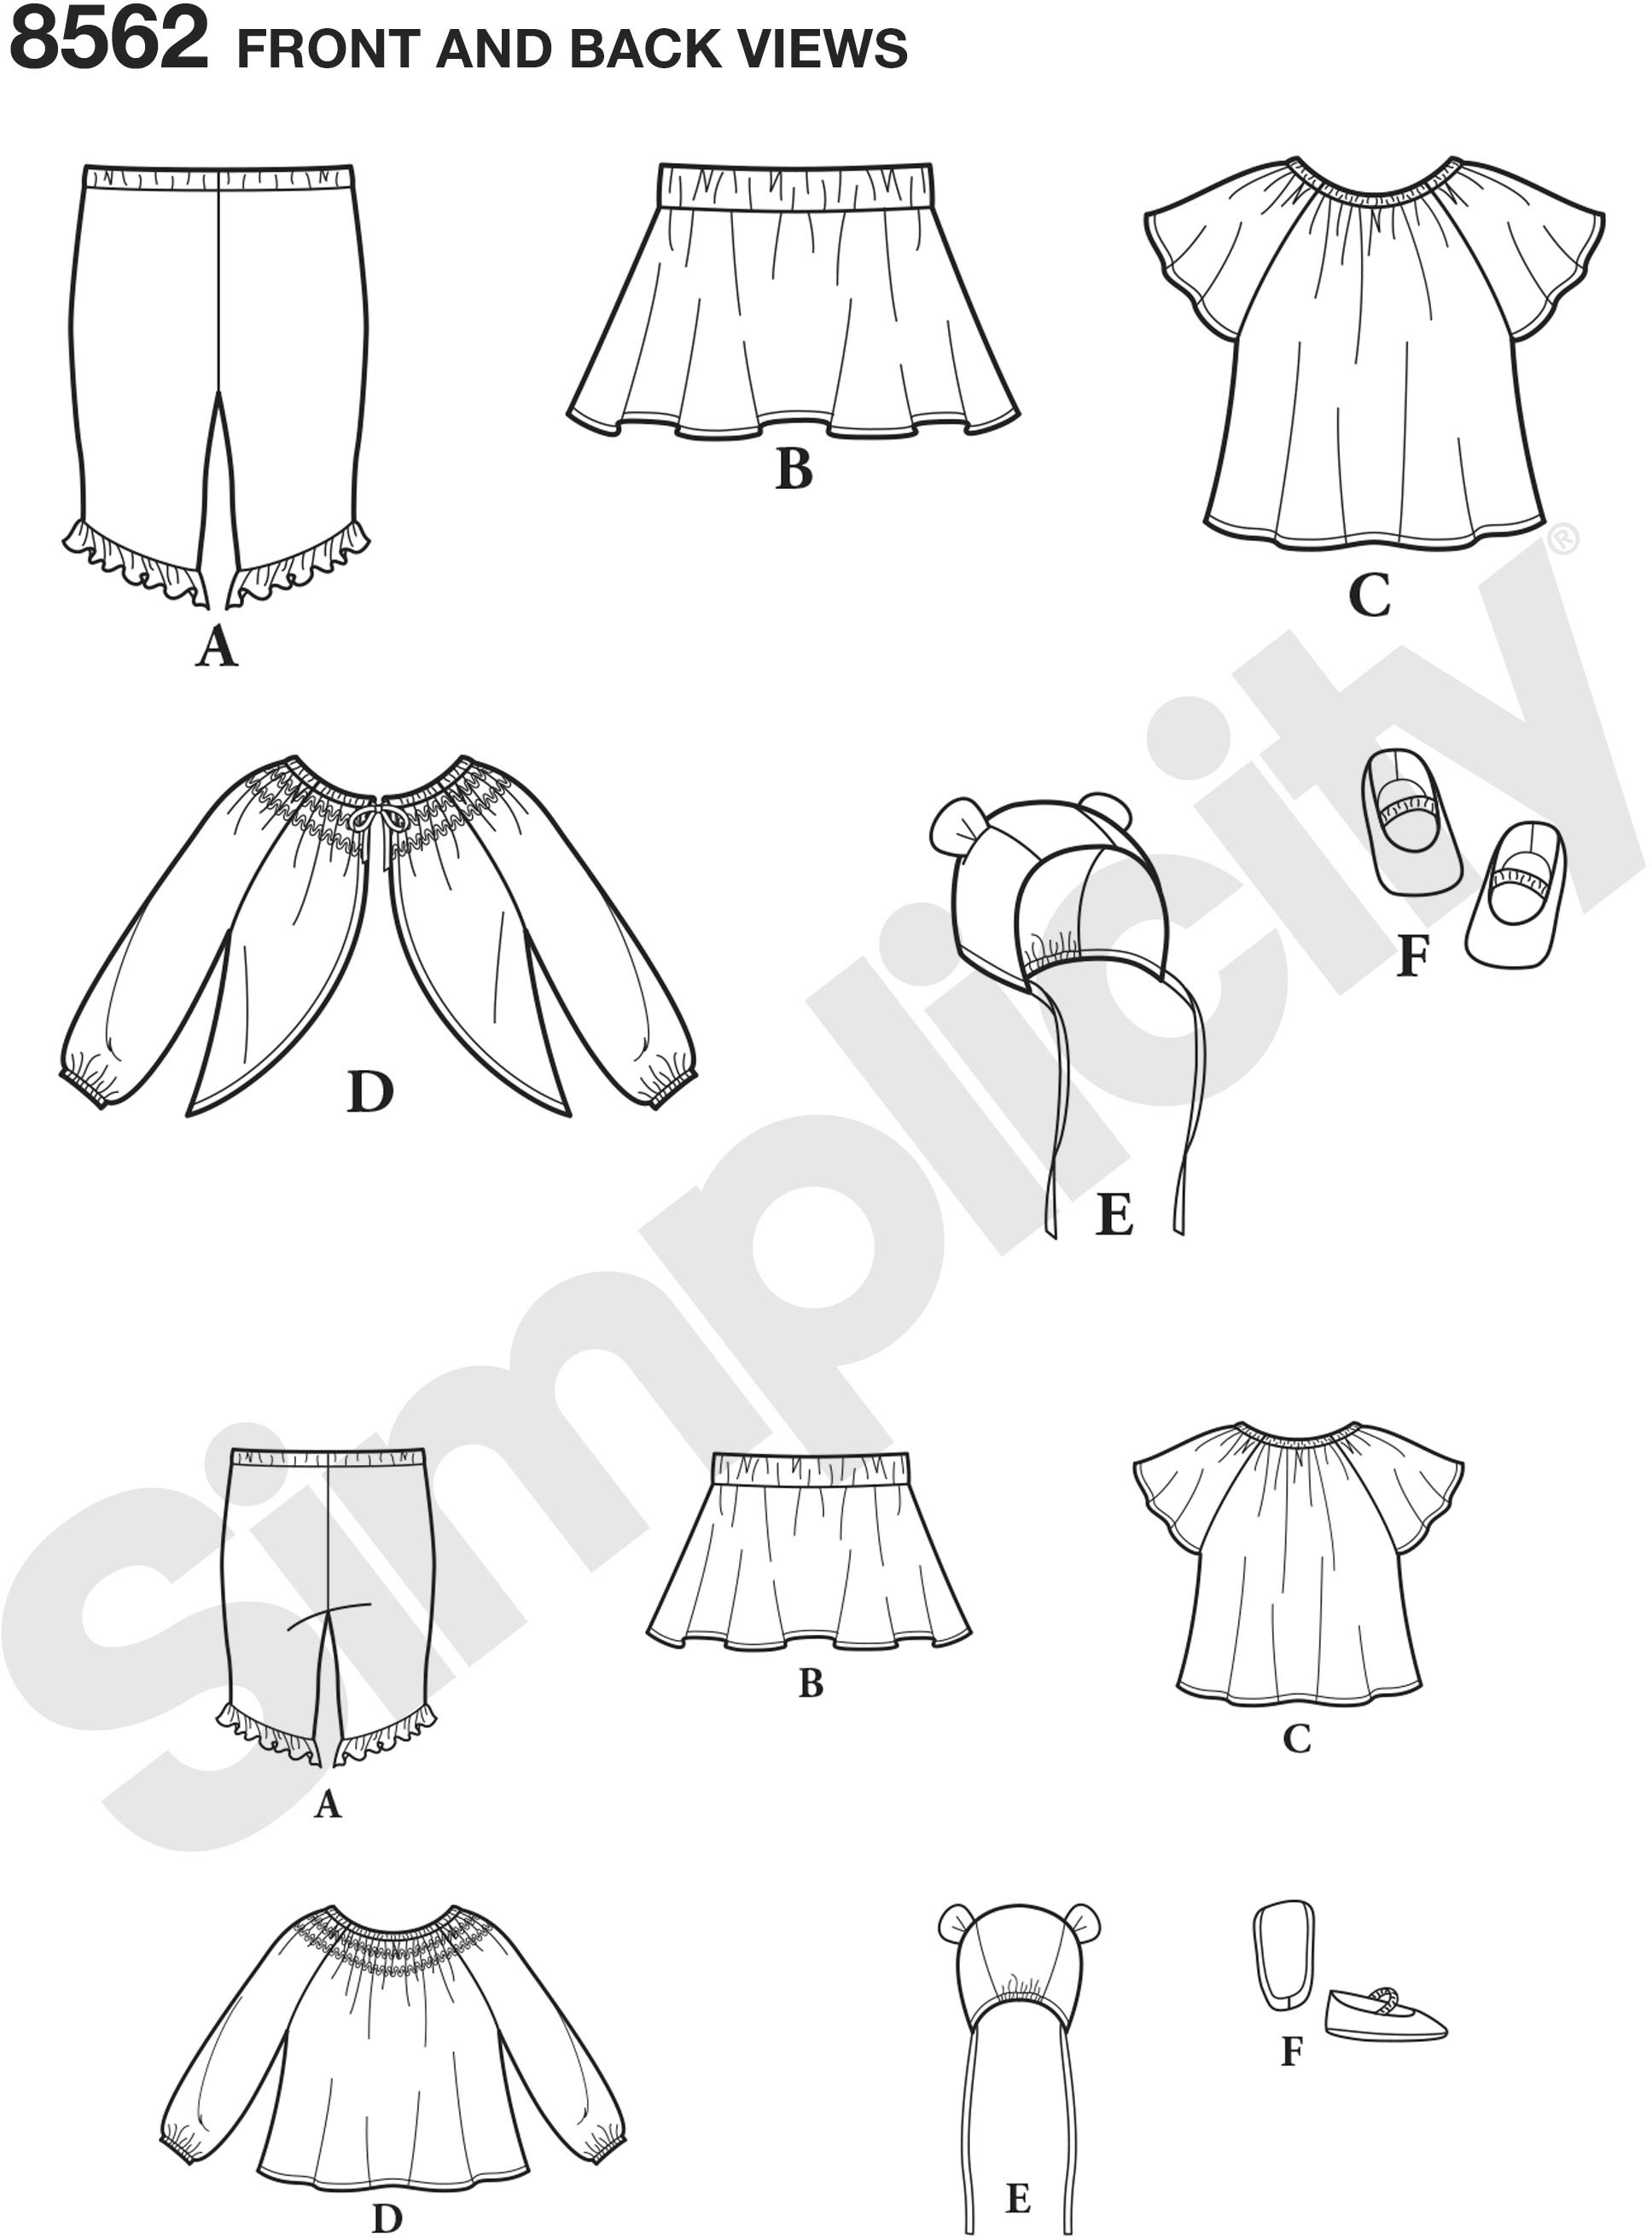 Baby Gear patterns by Simplicity give you the essentials in one package! Includes a jacket, top, skirt, capri leggings, bonnet in three sizes, and shoes in four sizes. Build your baby the best wardrobe using these fun and updated pieces.